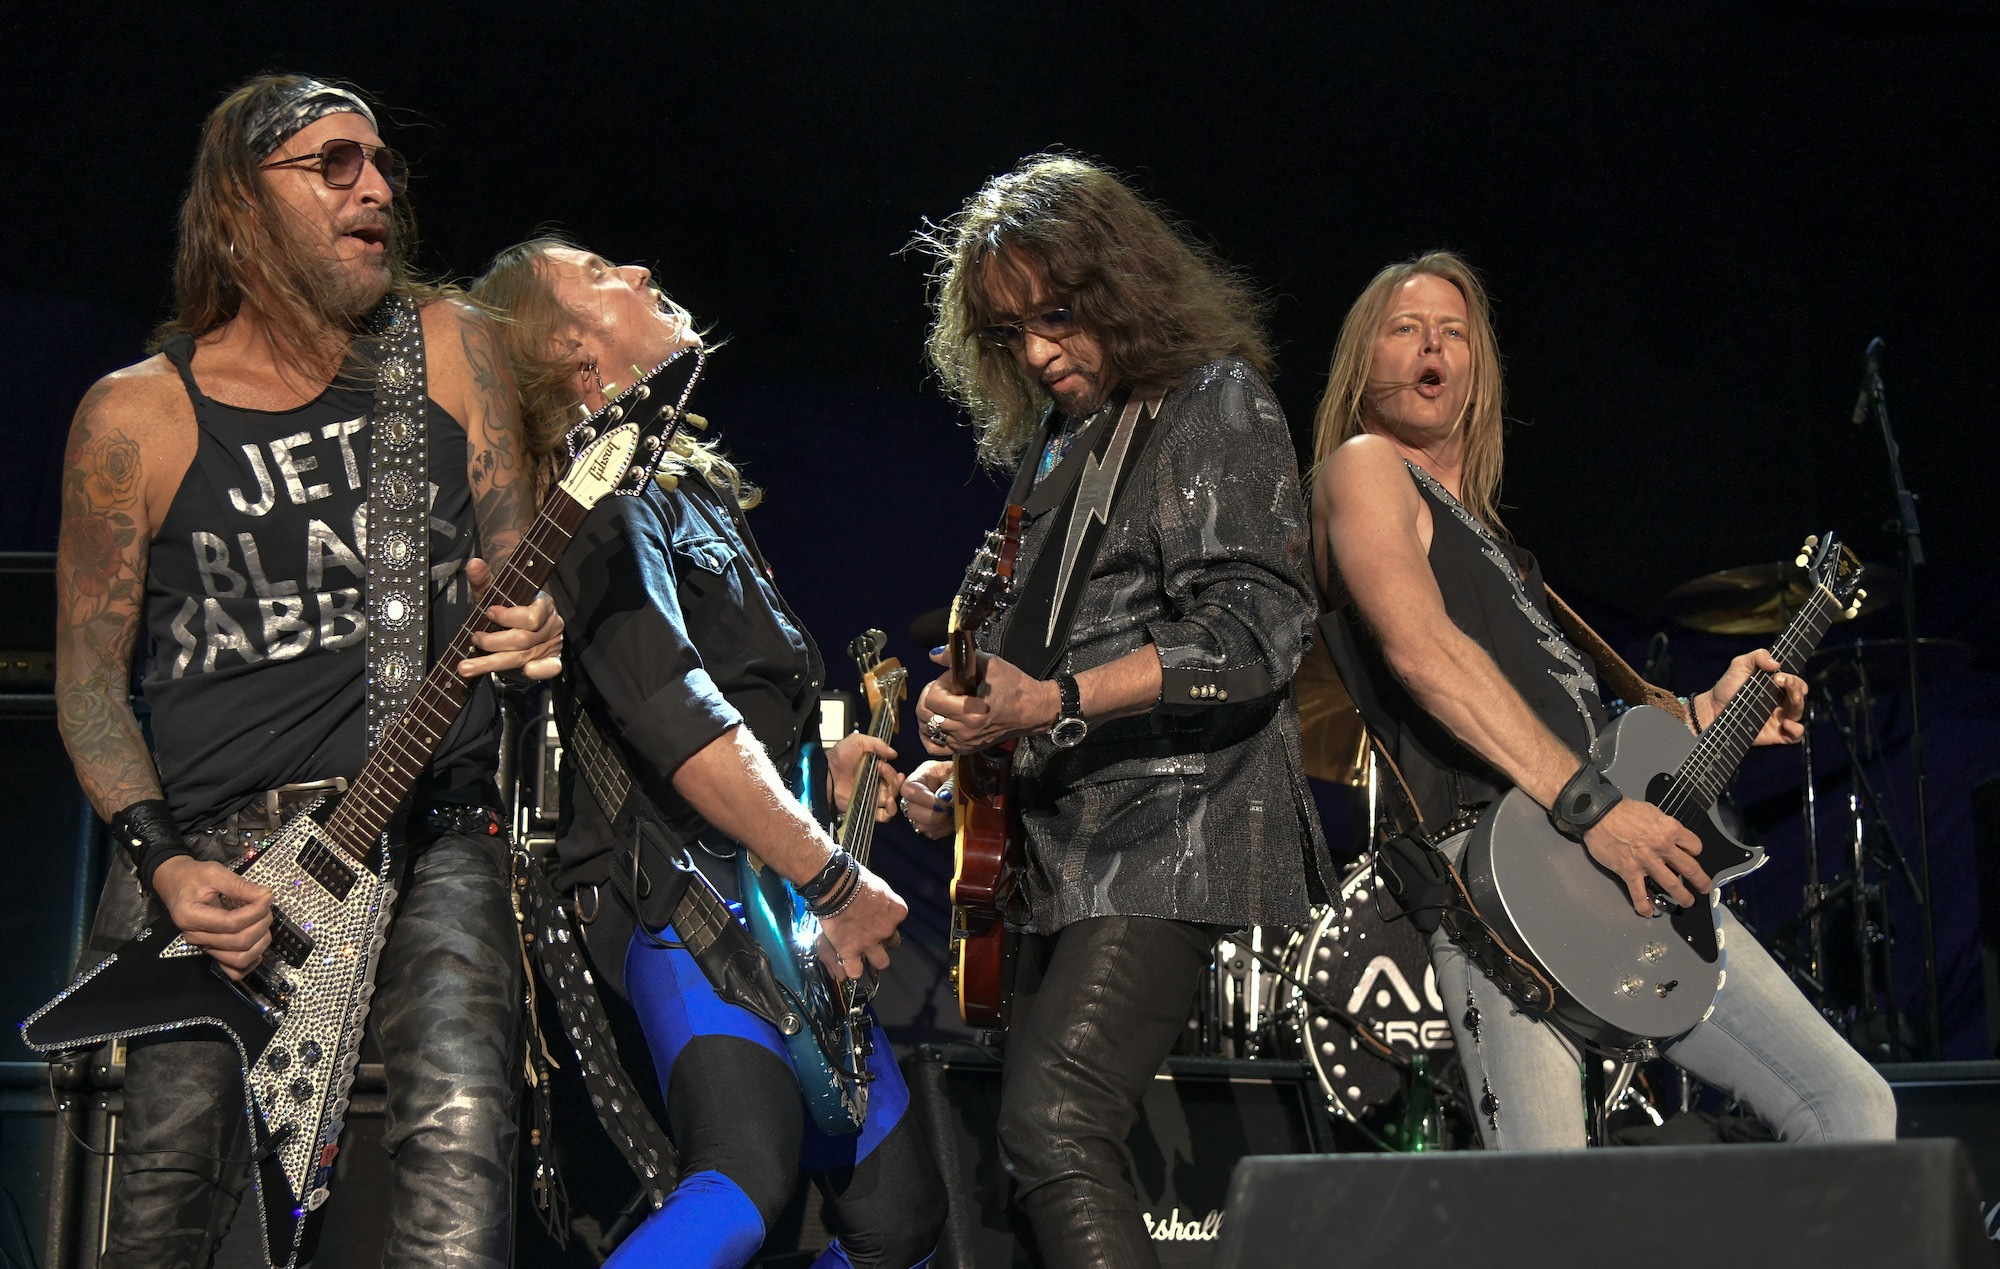 Ace Frehley Live at Huntington Bank Pavilion [GALLERY] 10